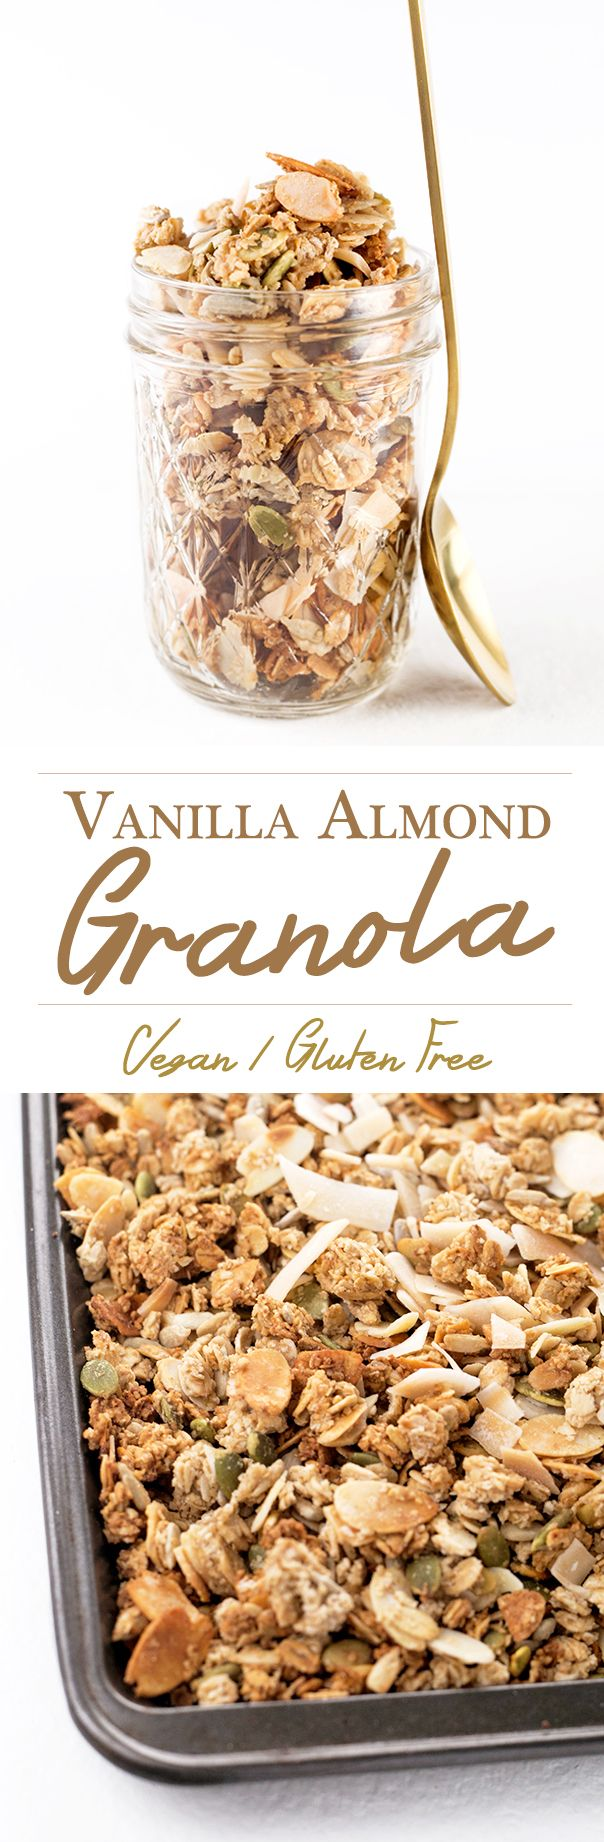 Vanilla Almond Vegan Granola - delicious Vegan granola loaded with clusters, flavored with Almond and Vanilla.